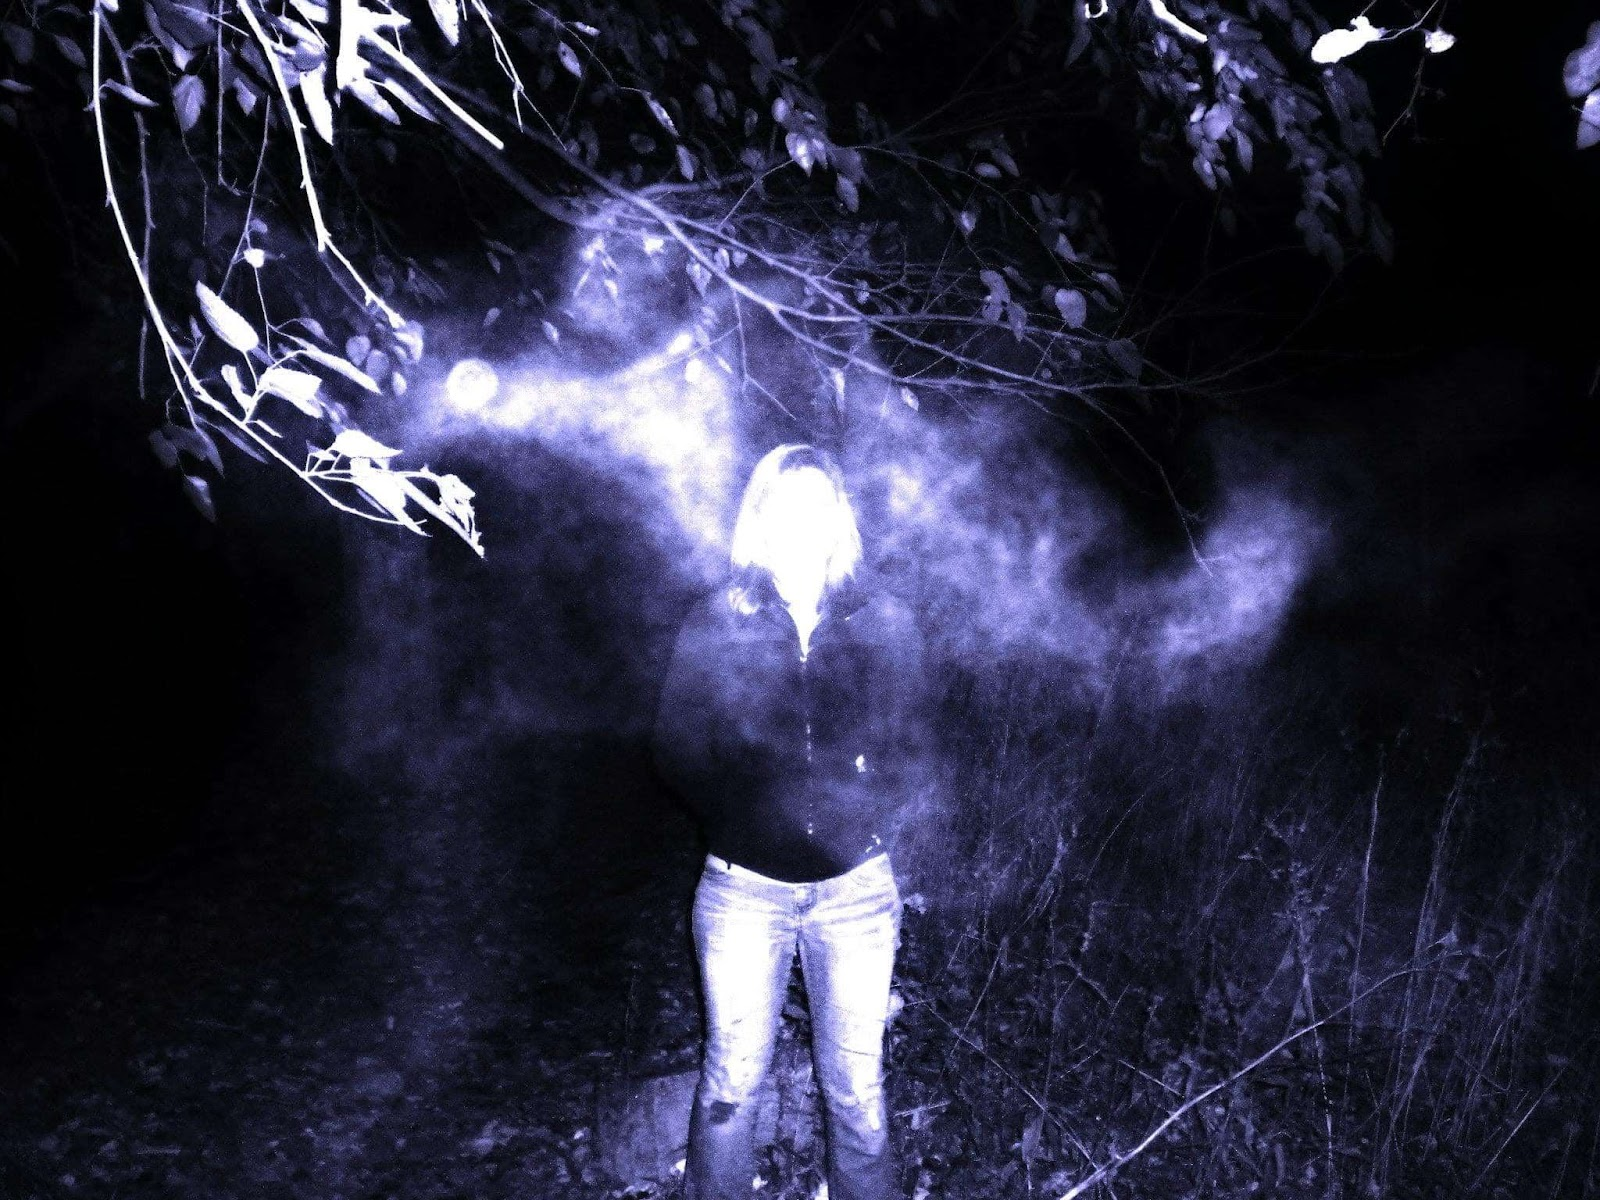 Facebook July 11, 2019 Kenneth Deheve  A few years ago, my friends and I visited one the most haunted places in the country, Bachelors Grove, and we took a photo of one of our friends, Heather Robson, standing under a tree. When we looked back at the photo, there was a suddenly a strange fog that appeared that was not there when we took the photo. We played with the contrast a little bit in the second photo. Still have no idea where it came from but this fucked us up good.  (Contrasted Photo)